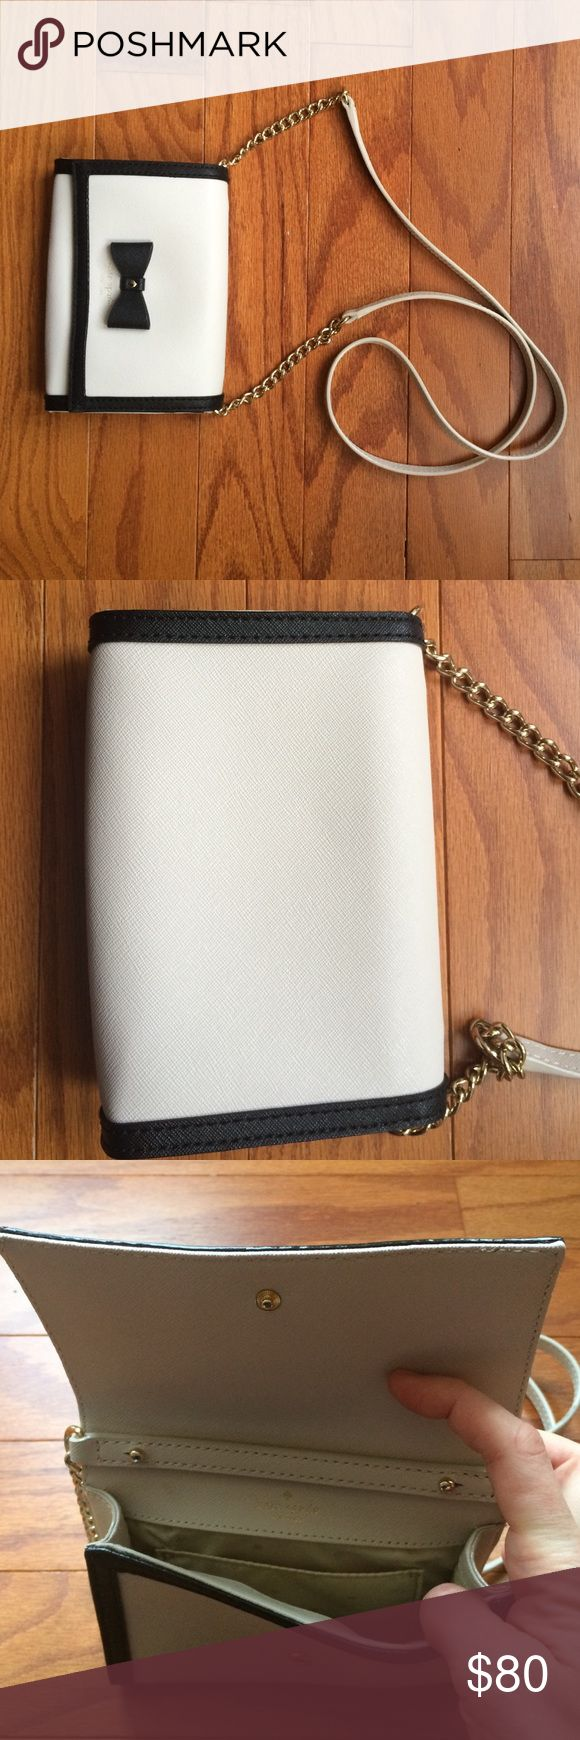 "Kate Spade Hazel Court Cami Crossbody/Clutch Combo Cross-hatched leather, 4.5""h / 6.2"" w / 1"" d. Strap is removable to convert to a clutch, making this a great day-to-night bag. It's the perfect size for a few small extras beyond phone and cards. Gently used. The only flaw is some light wear on the strap (see picture 4), not noticeable when worn. Smoke-free home. No trades. kate spade Bags Crossbody Bags"